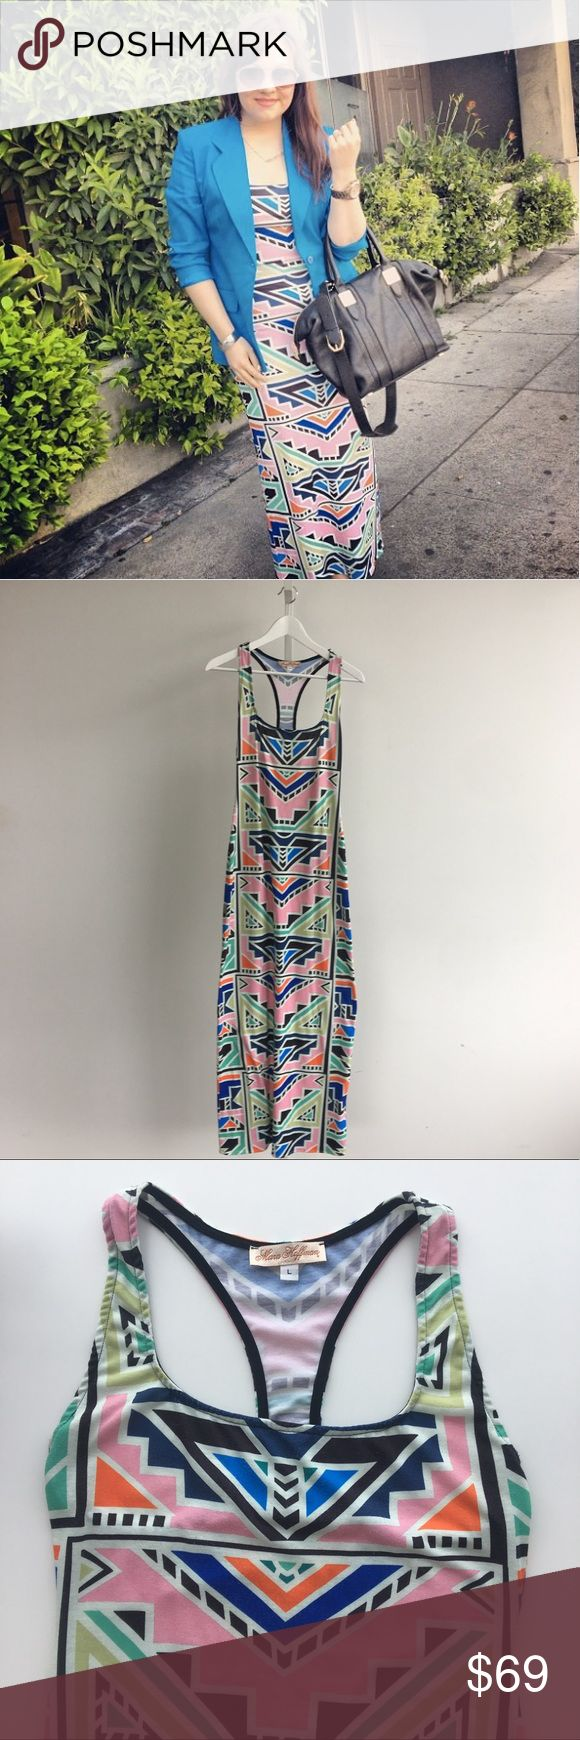 Mara Hoffman Aztec Print Tank Maxi Dress Multicolor print jersey maxi dress featuring a deep scoop neck and a racer back. Note condition of sticking on hem as well as wash wear. Please carefully review each photo before purchase as they are the best descriptors of the item. My price is firm. No trades. First come, first served. Thank you! :) Mara Hoffman Dresses Maxi